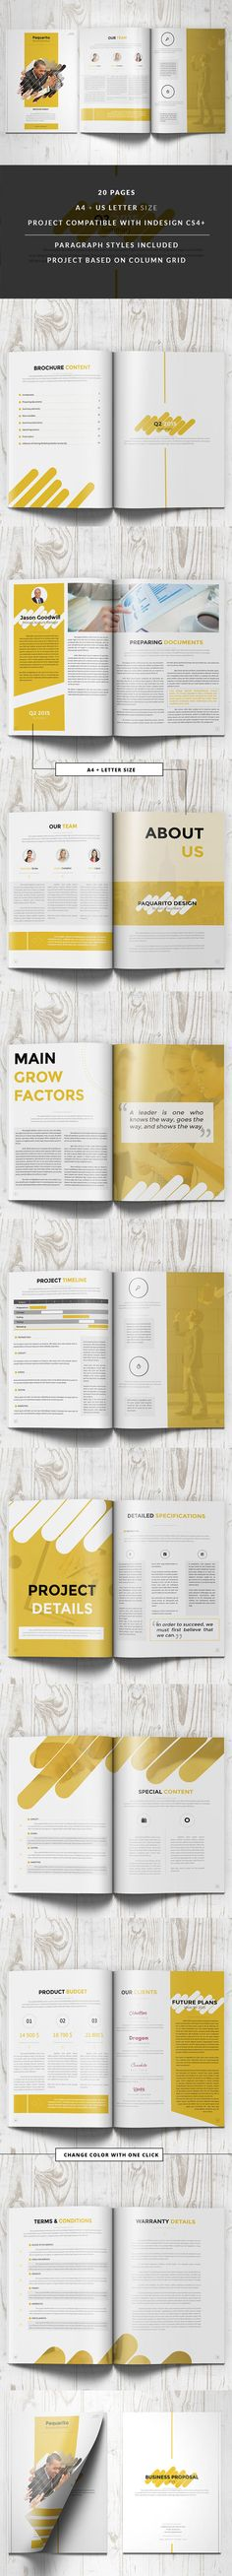 Annual Report Template A4 Landscape Pinterest Annual reports